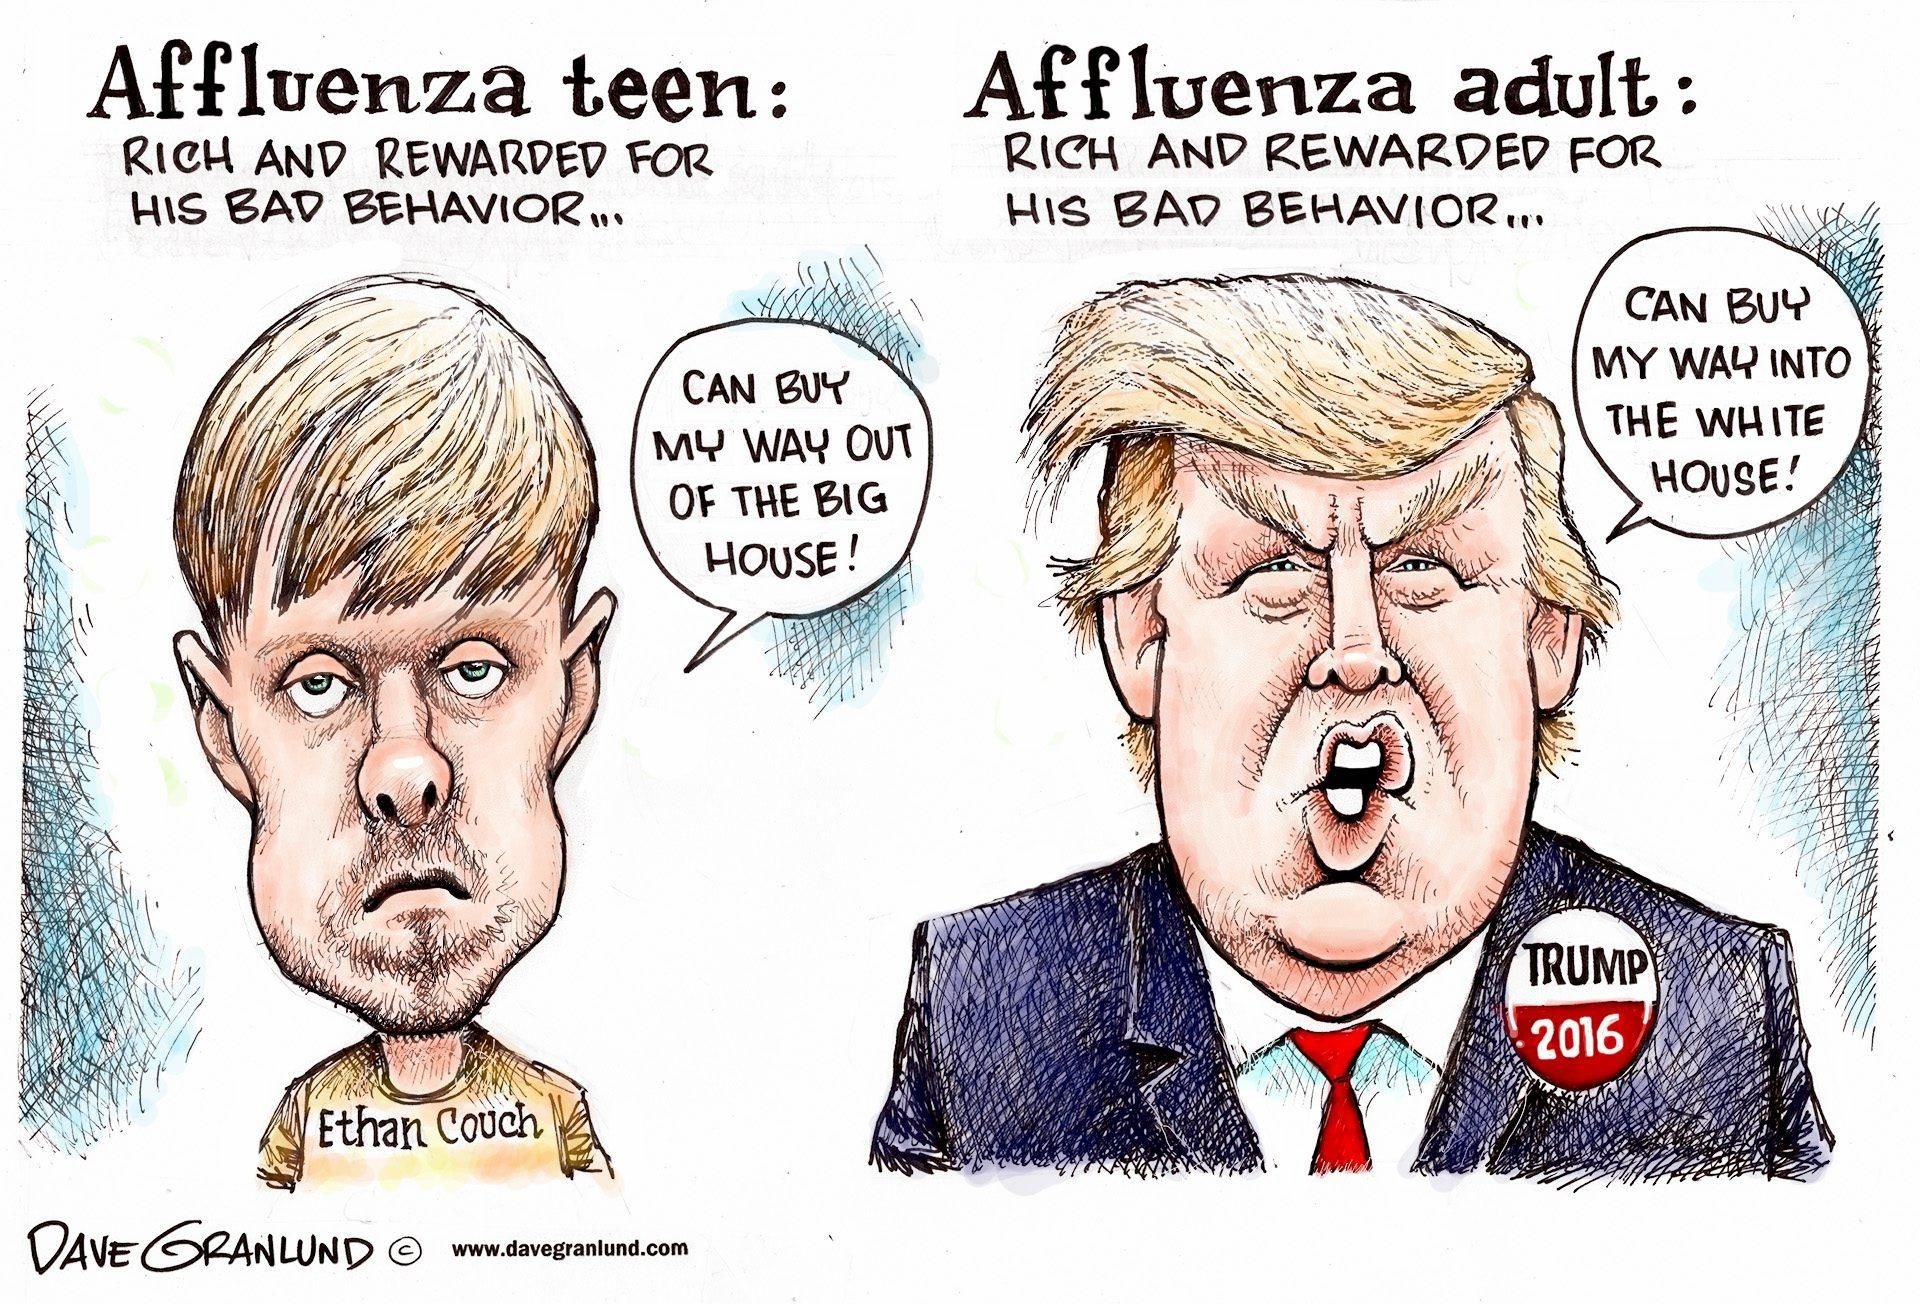 Dave Granlund Cartoon On Donald Trump And Affluenza Teen Ethan